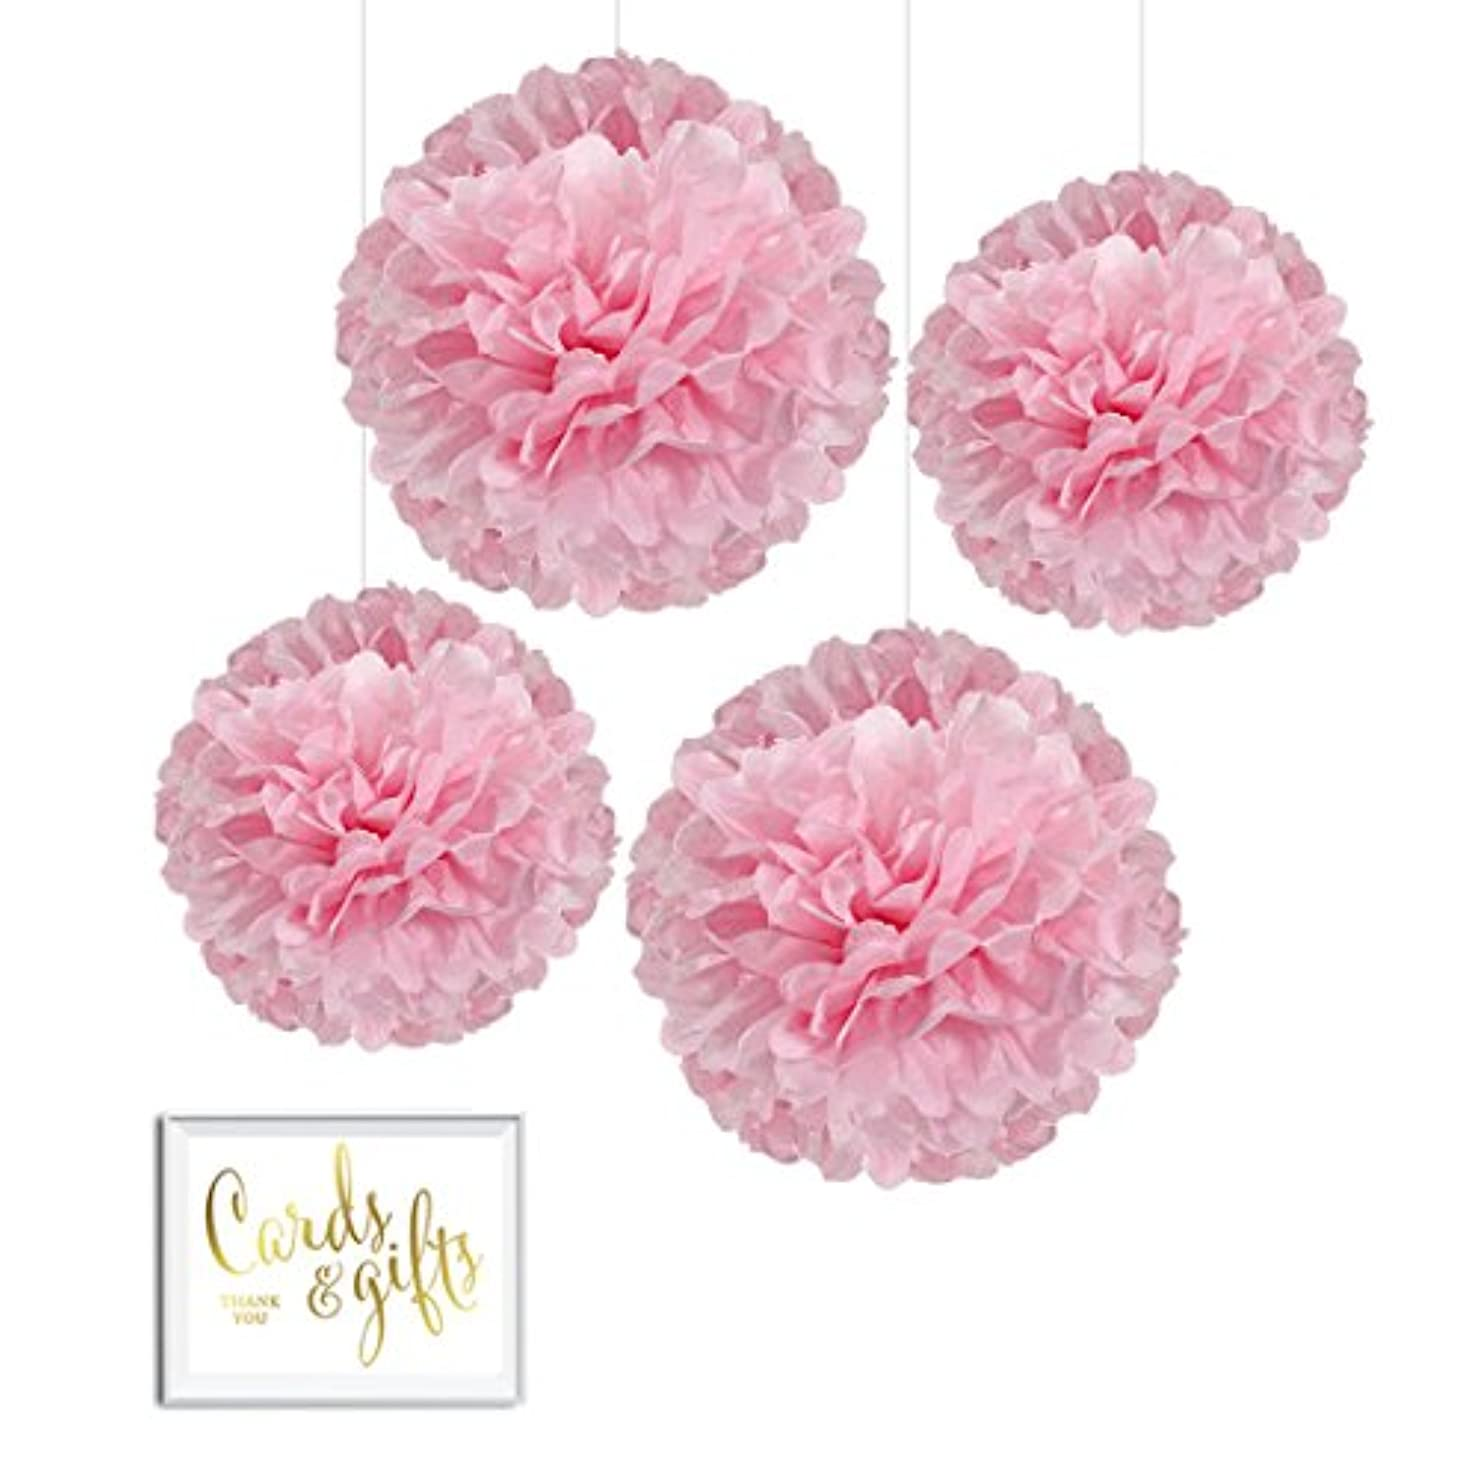 Andaz Press Tissue Paper Pom Poms Hanging Decorations with Free Gold Card & Gifts Party Sign, Blush Pink, 8-inch and 10-inch, 4-Pack, Girl Baby Shower Baptism Unicorn Colored Birthday Party